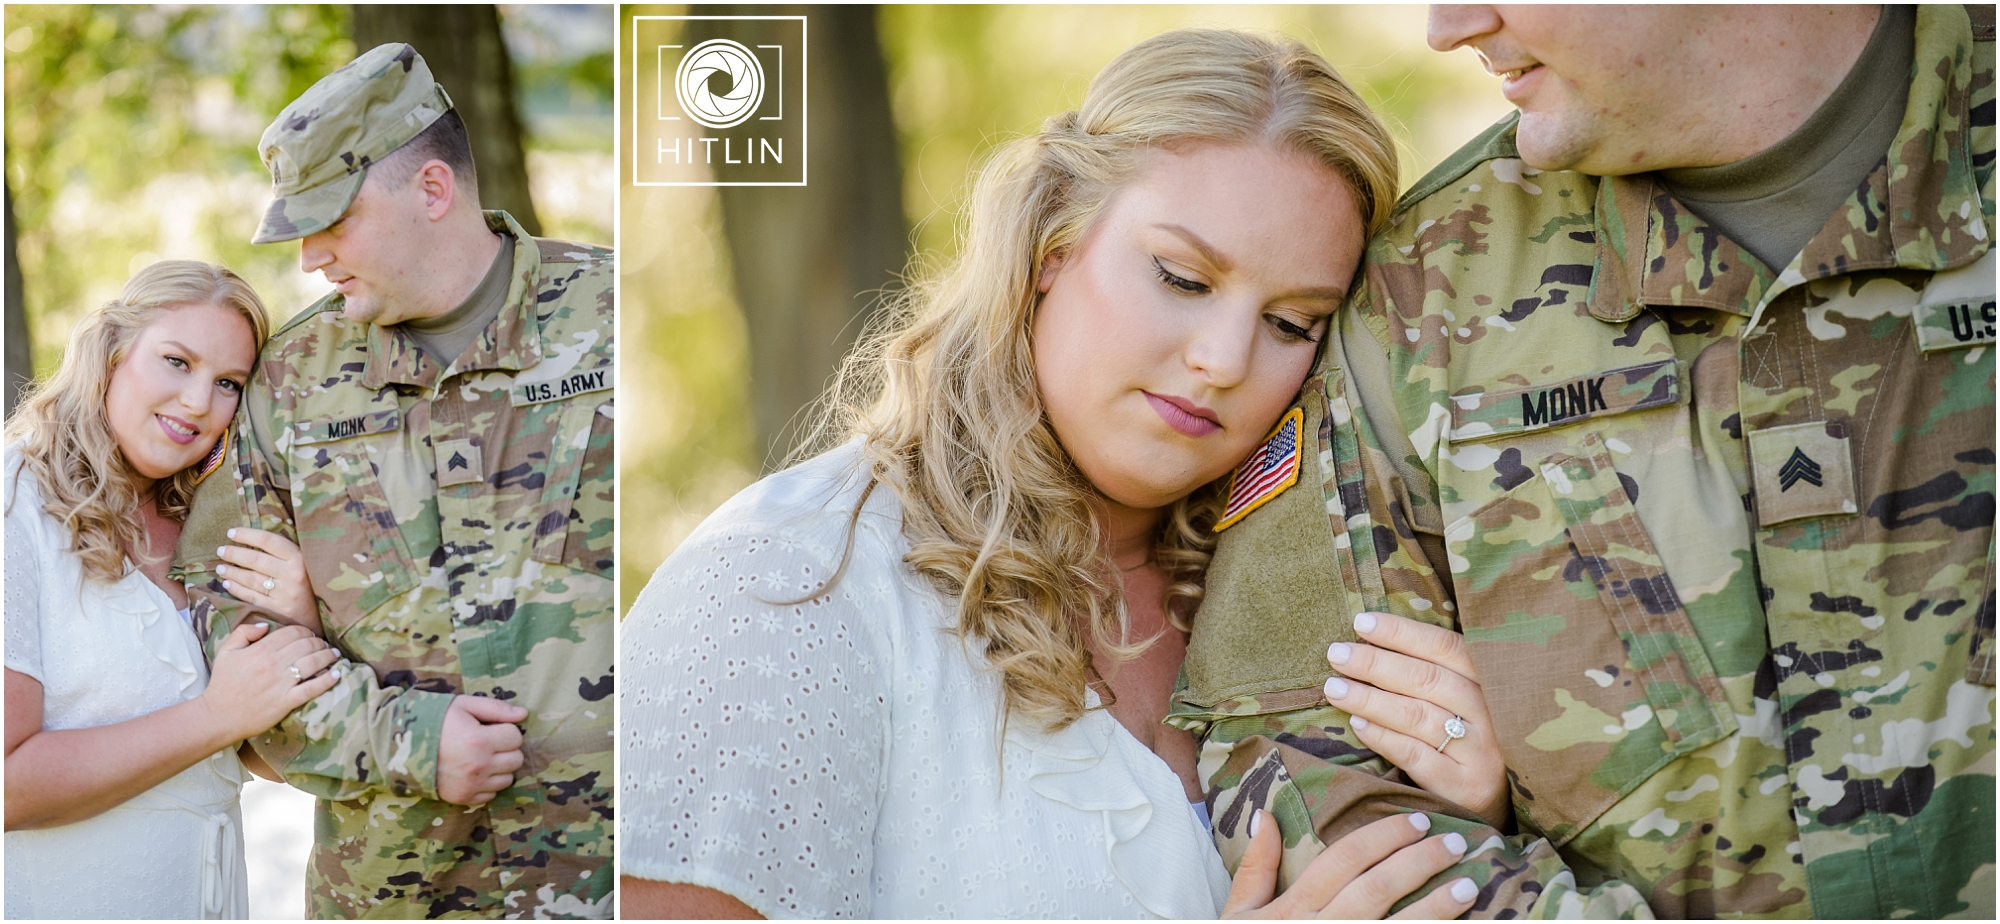 Kaileigh & Eric's Engagement Session